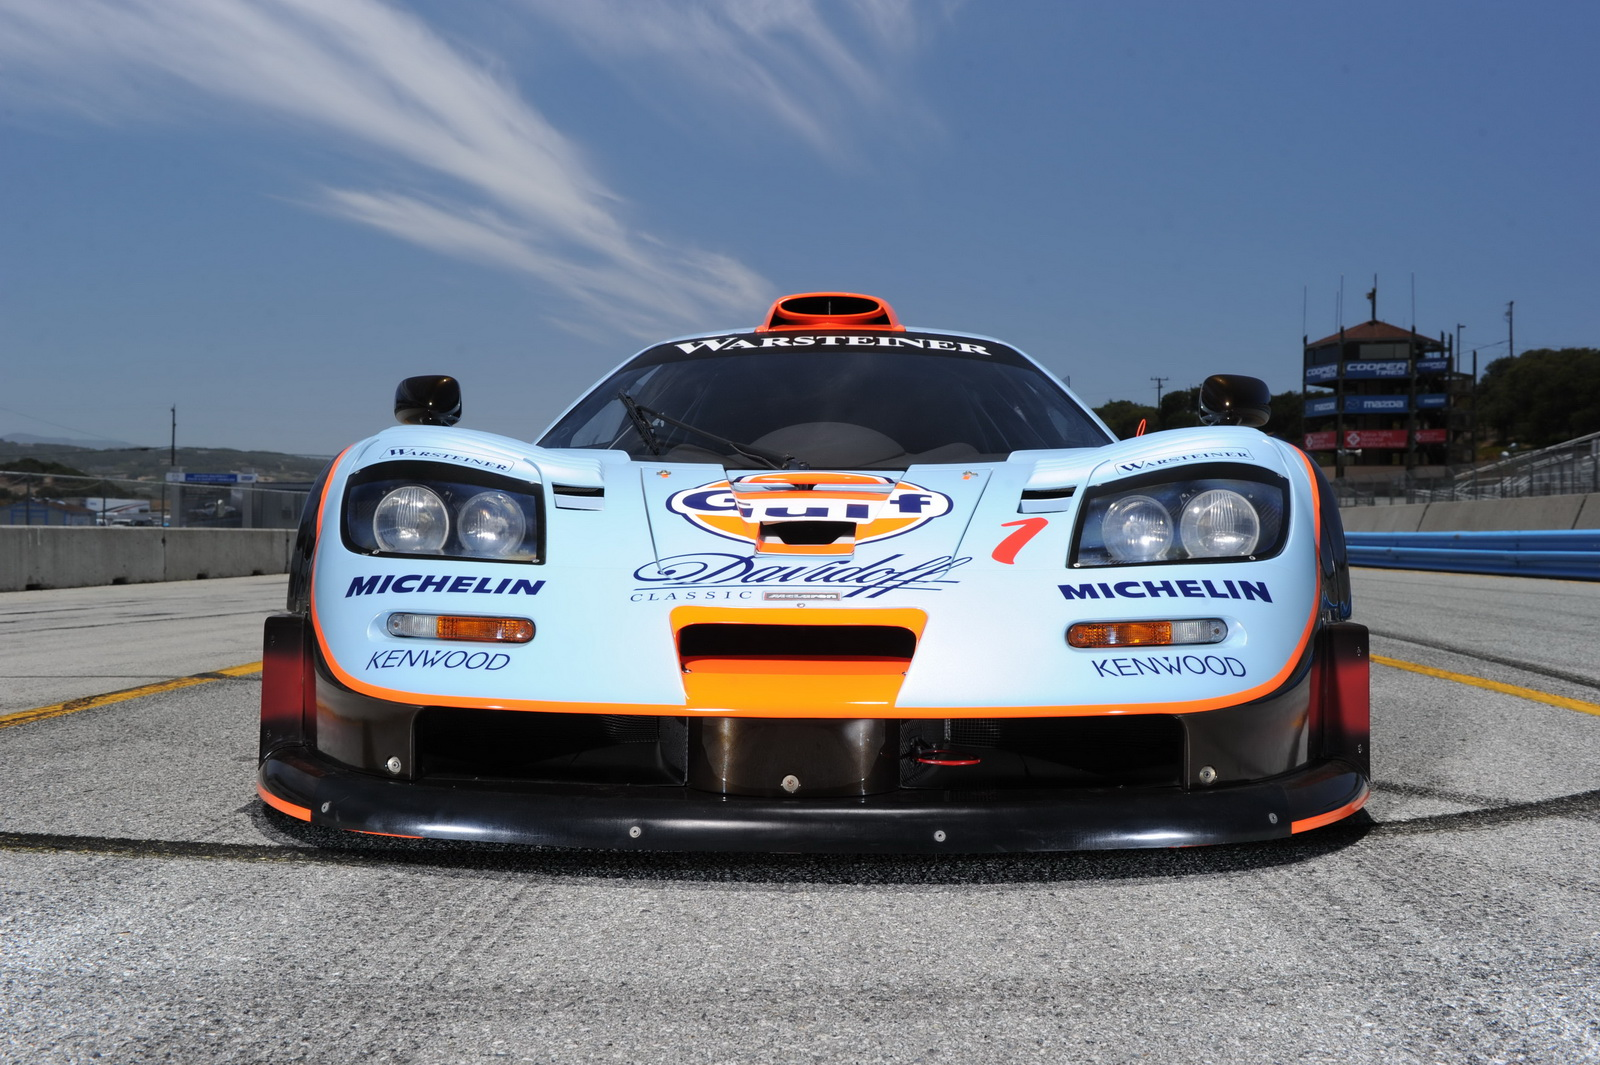 https://s1.cdn.autoevolution.com/images/news/mclaren-f1-gtr-longtail-is-a-fine-racecar-looking-for-a-new-owner-video-photo-gallery-95863_1.jpg